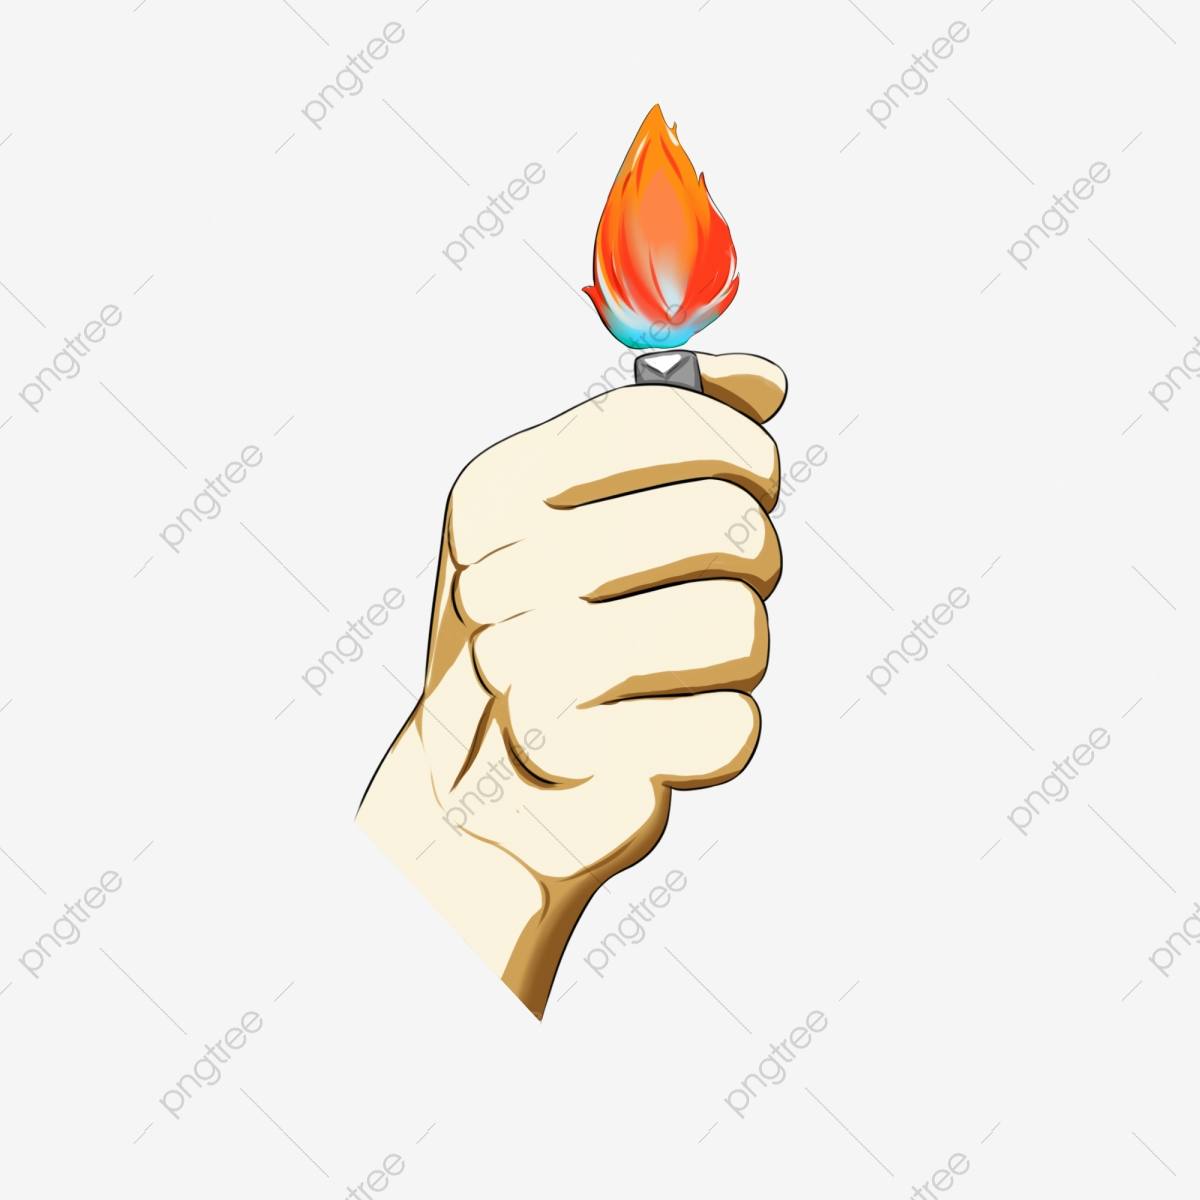 Hand Gesture Of Catching A Lighter Fire Gesture Take